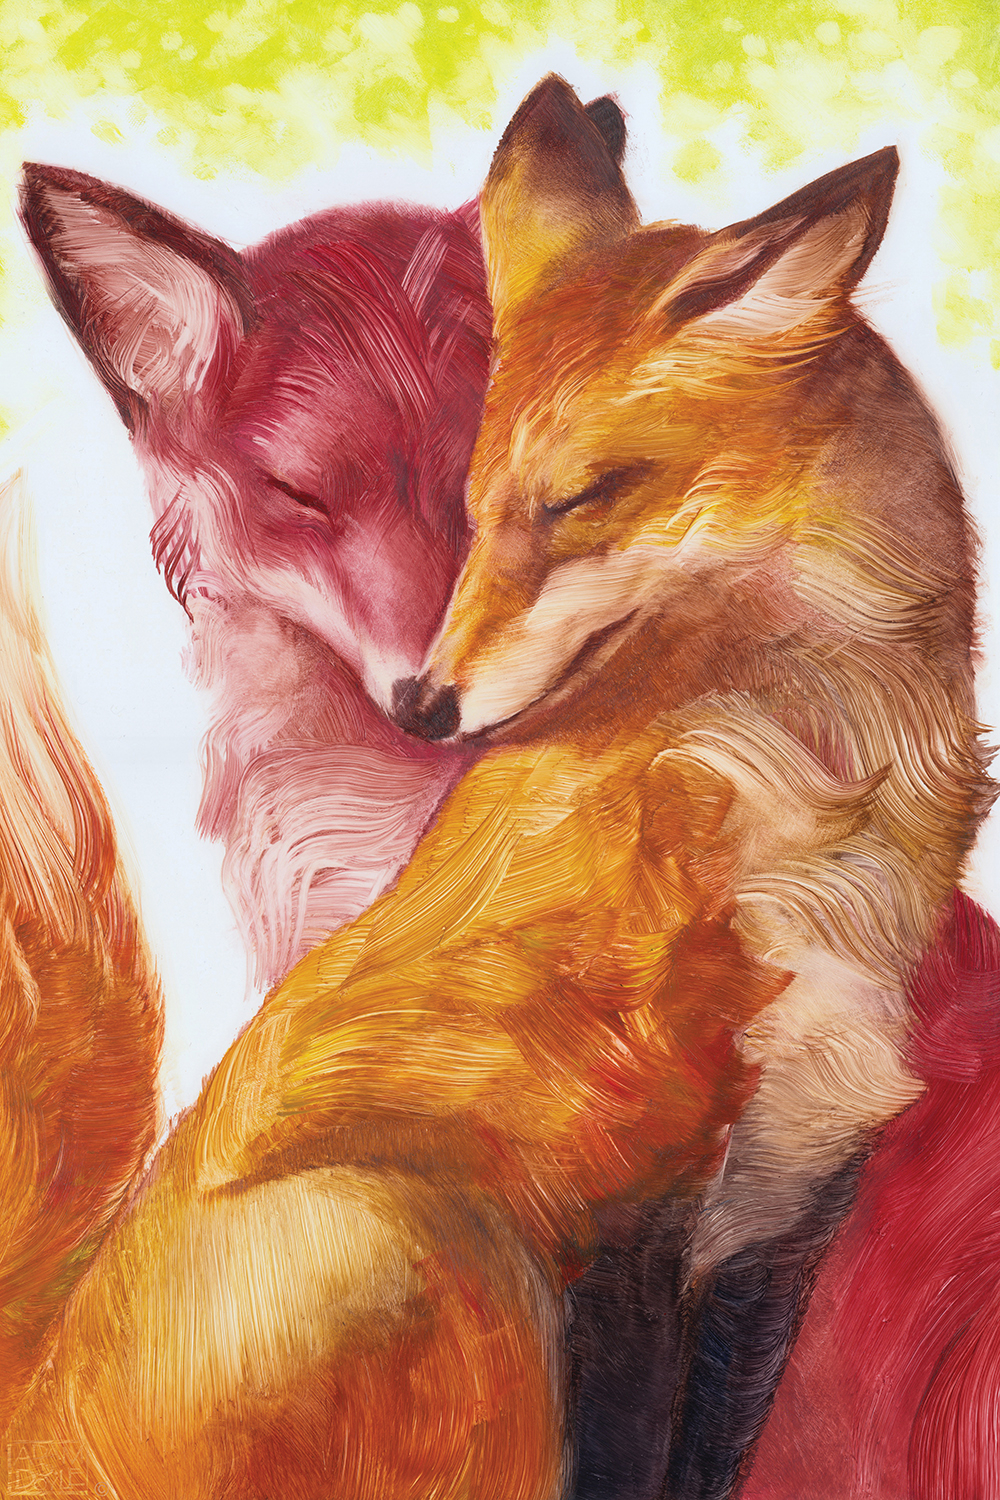 a red and orange fox touching snouts in an embrace